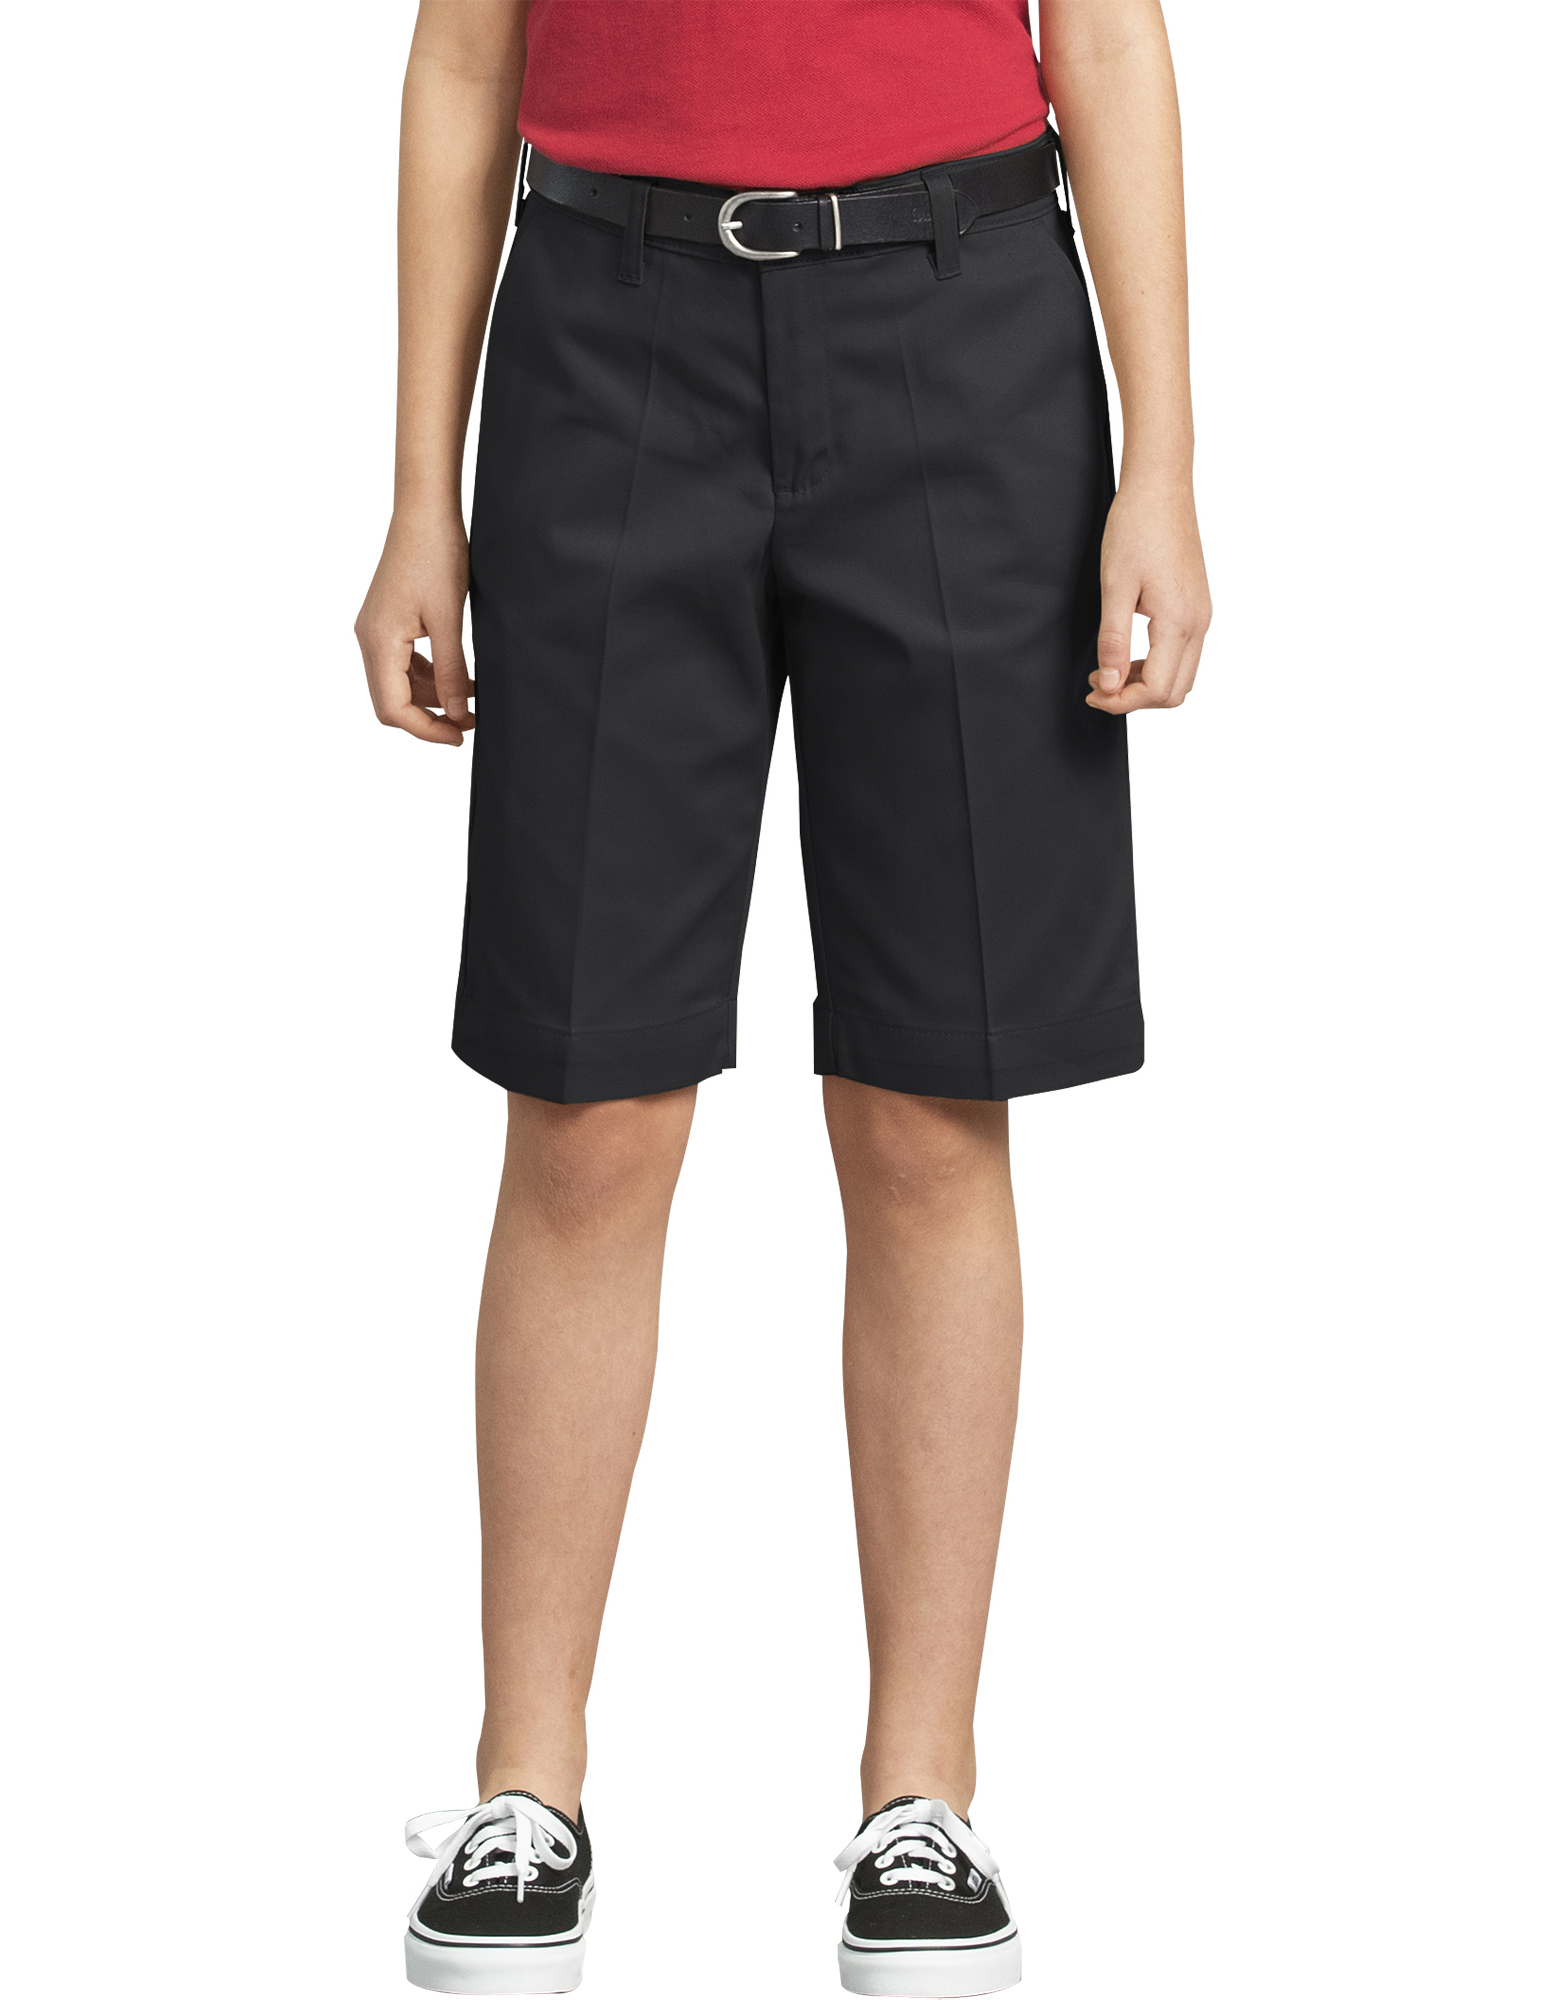 Girls' Classic Fit Bermuda Stretch Twill Shorts, 4-6 - Black (BK)